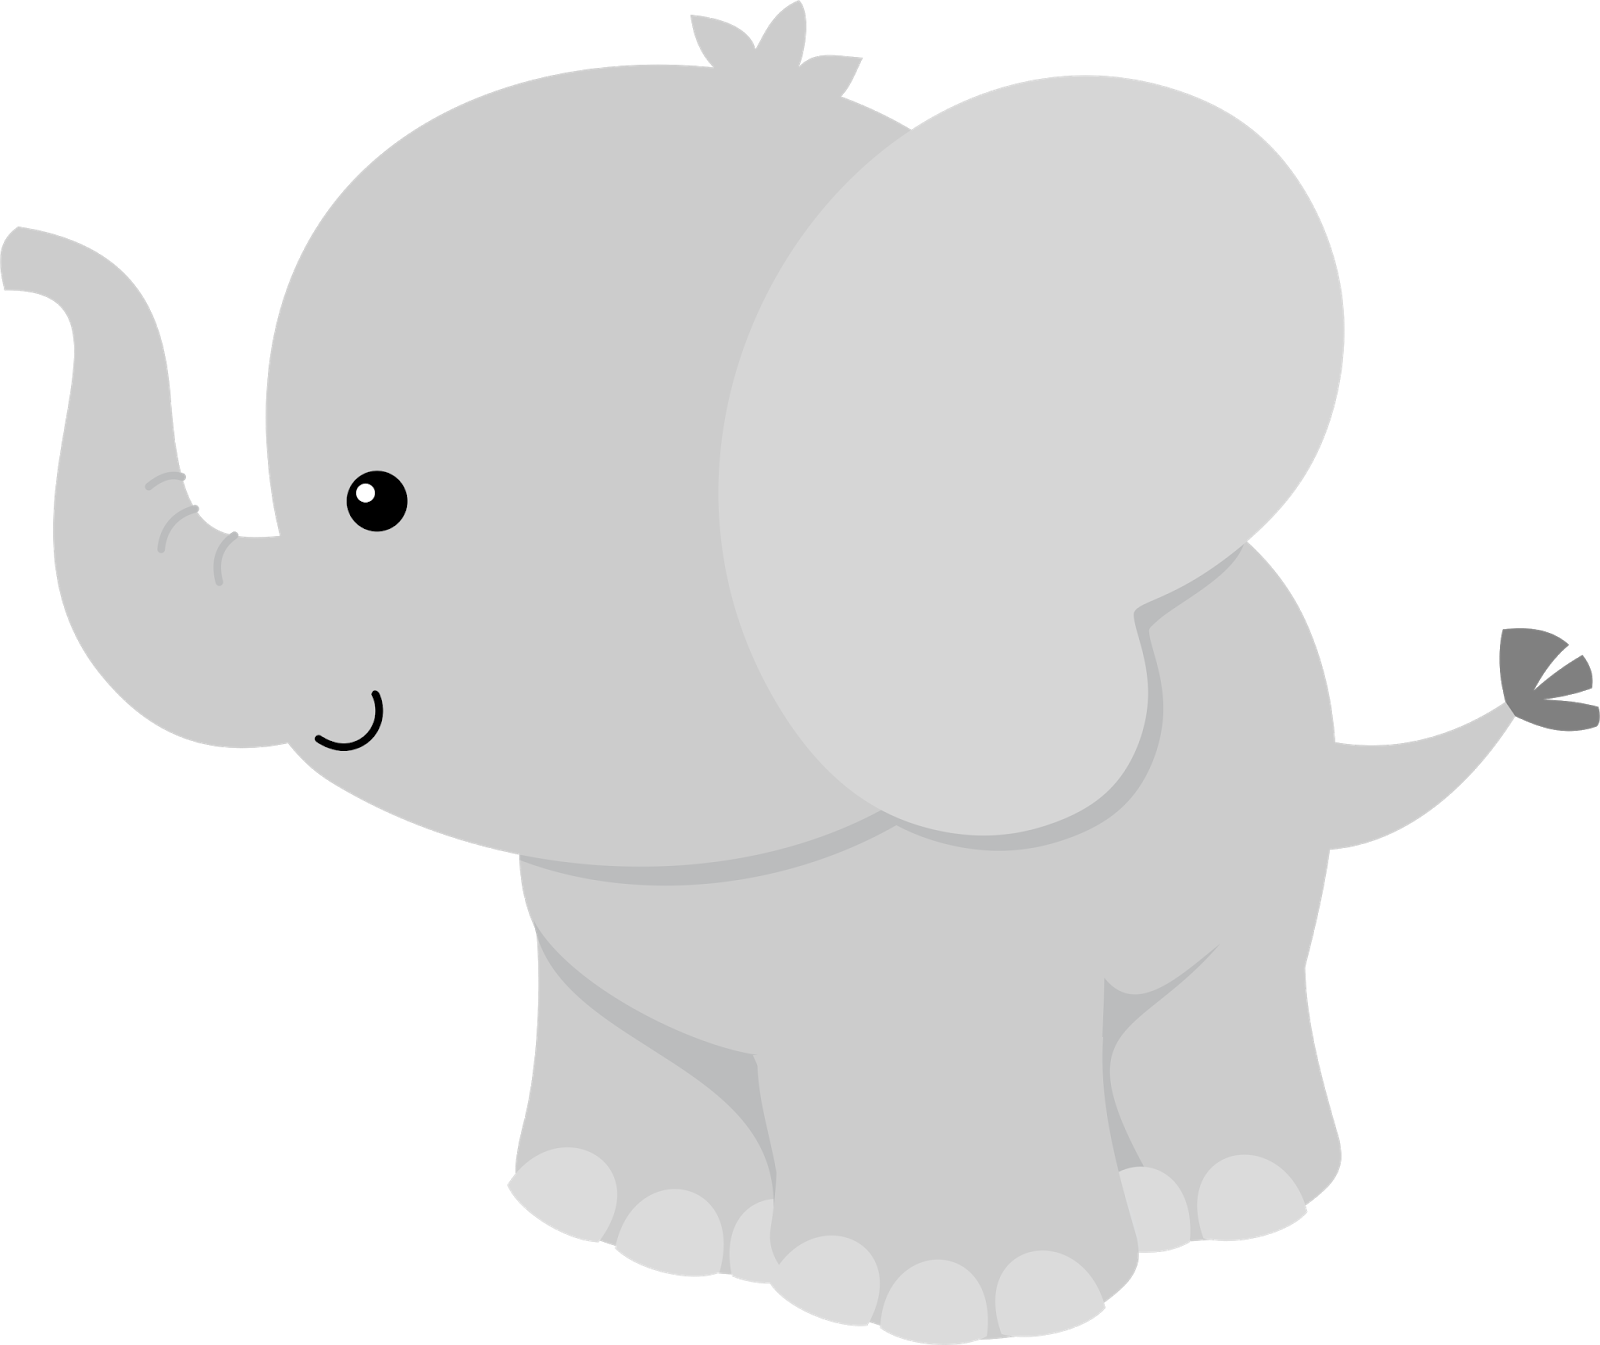 Jungle baby png p. Horn clipart elephant